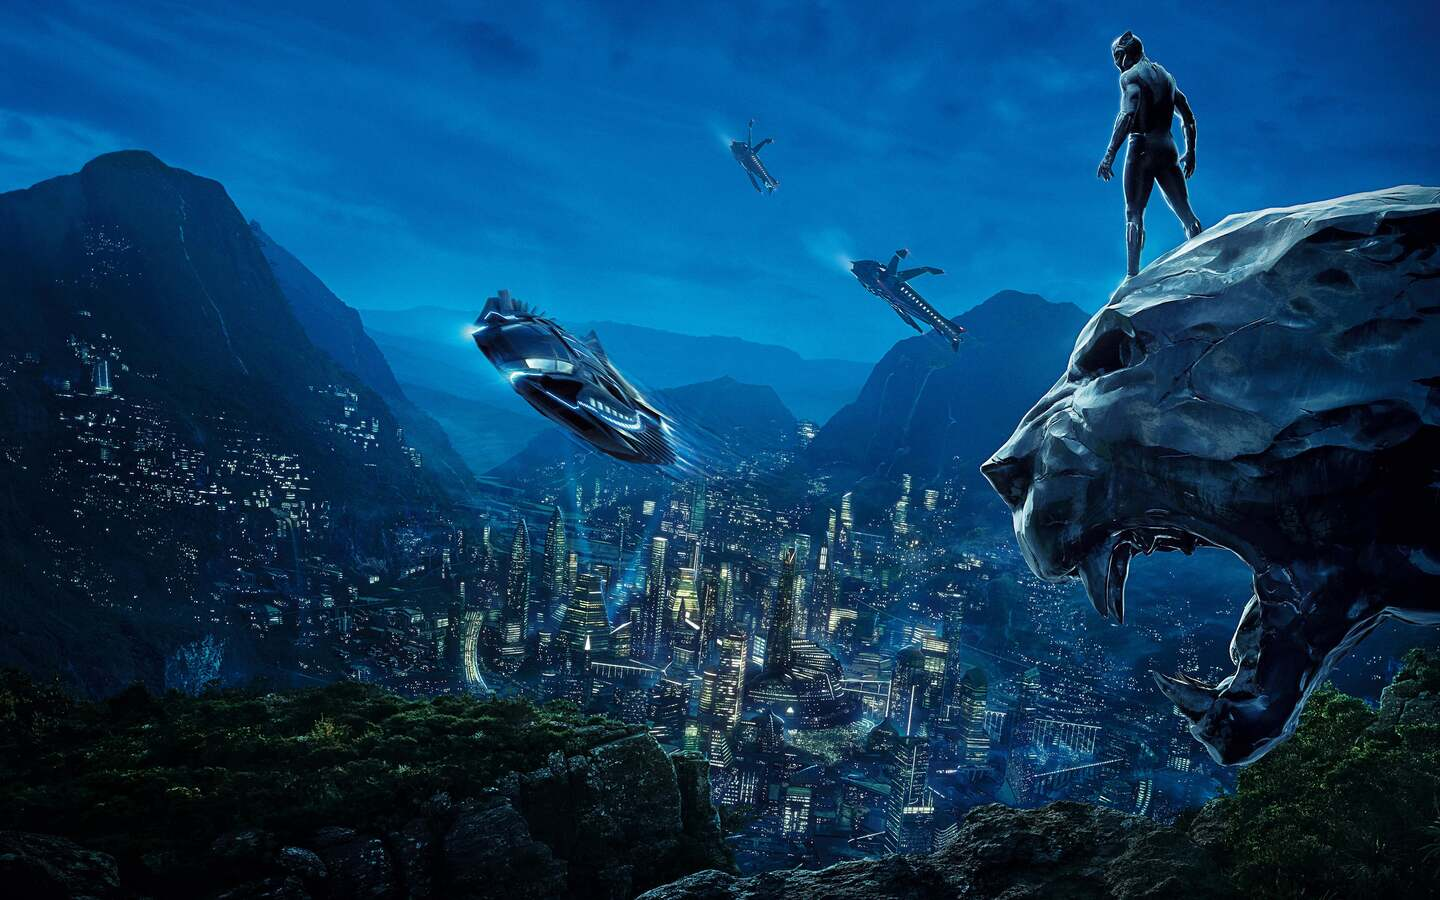 1440x900 Black Panther 4k Movie Poster 1440x900 Resolution ...